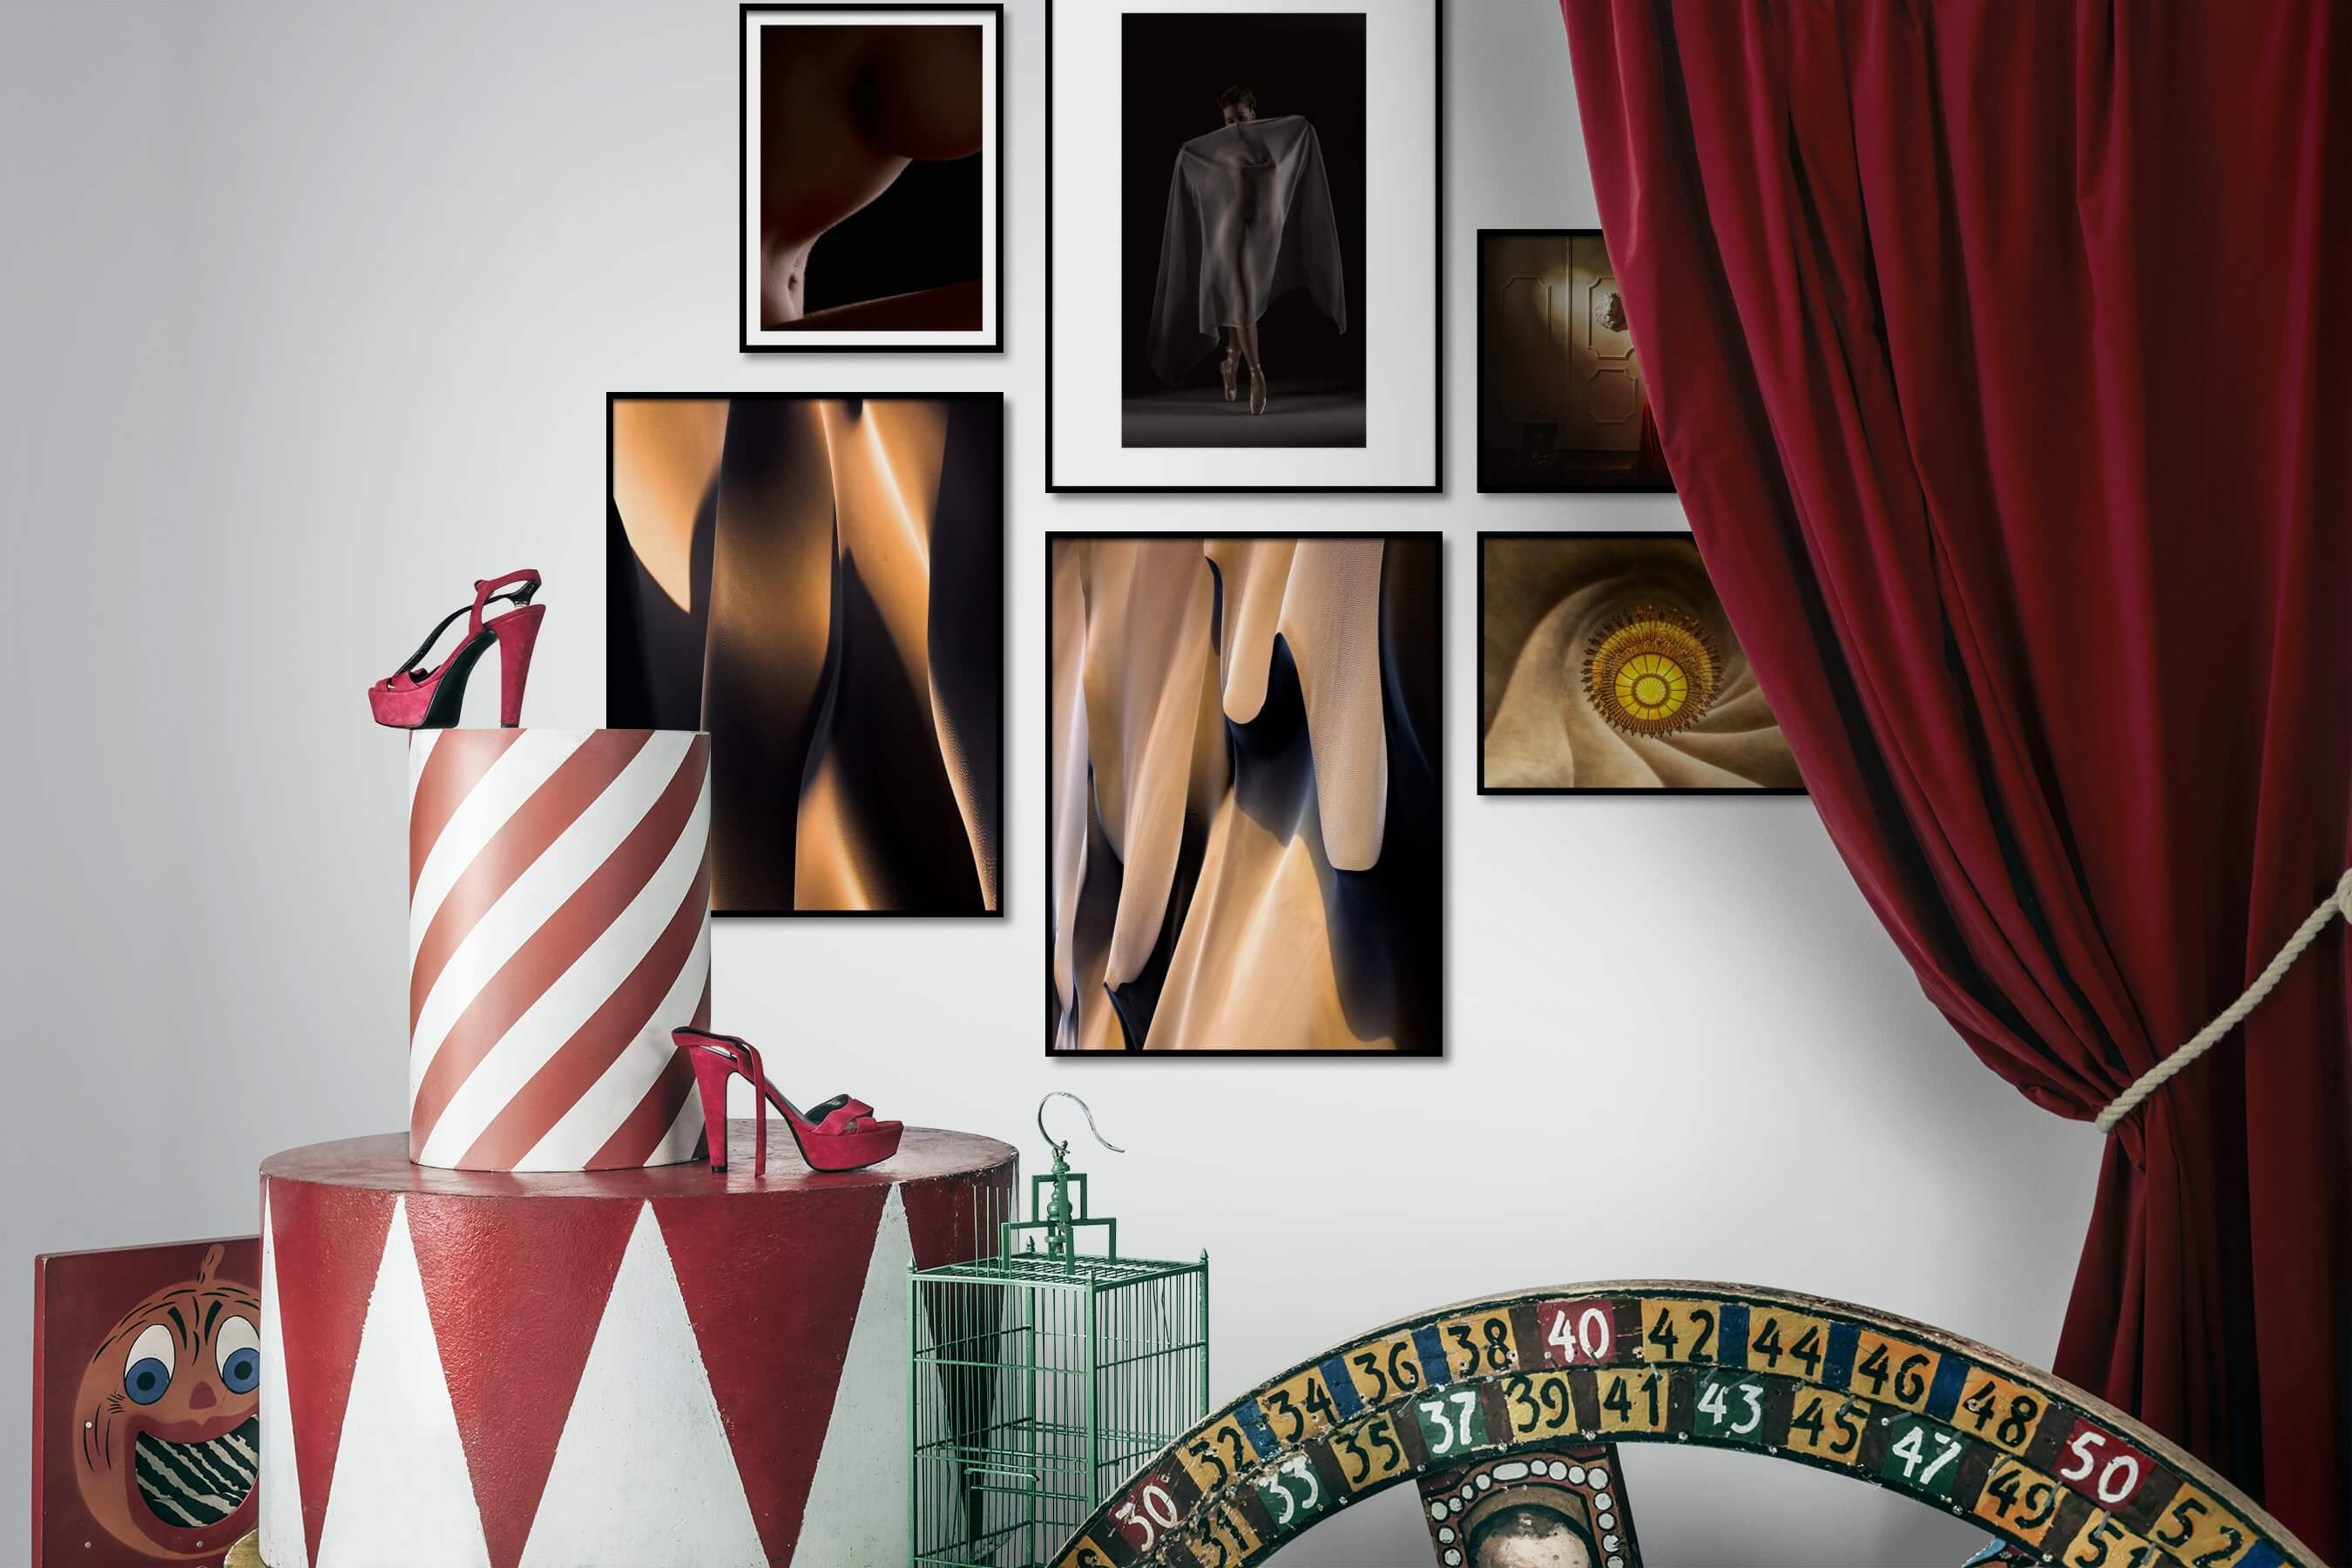 Gallery wall idea with six framed pictures arranged on a wall depicting Fashion & Beauty, For the Minimalist, Bold, For the Moderate, Nature, and Vintage